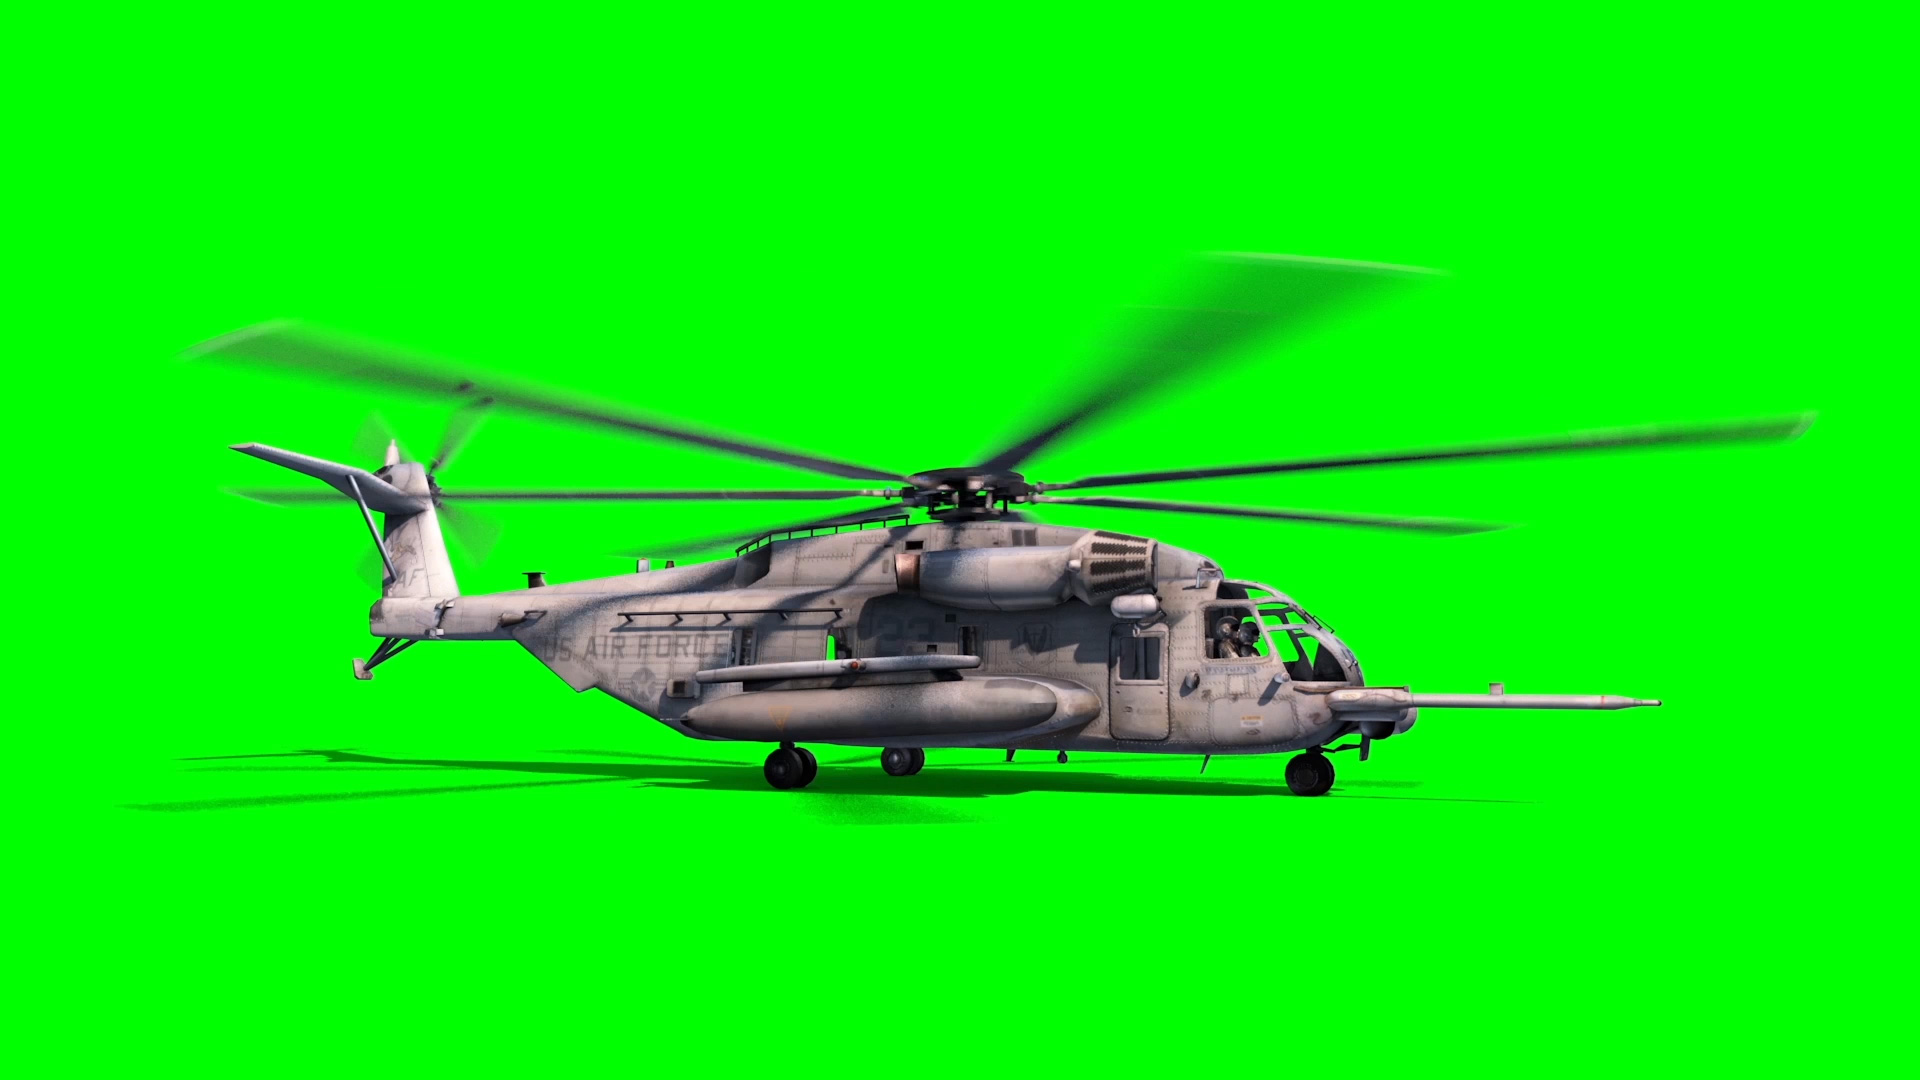 Helicopter Mh 53m 3d Model Animated Pixelboom